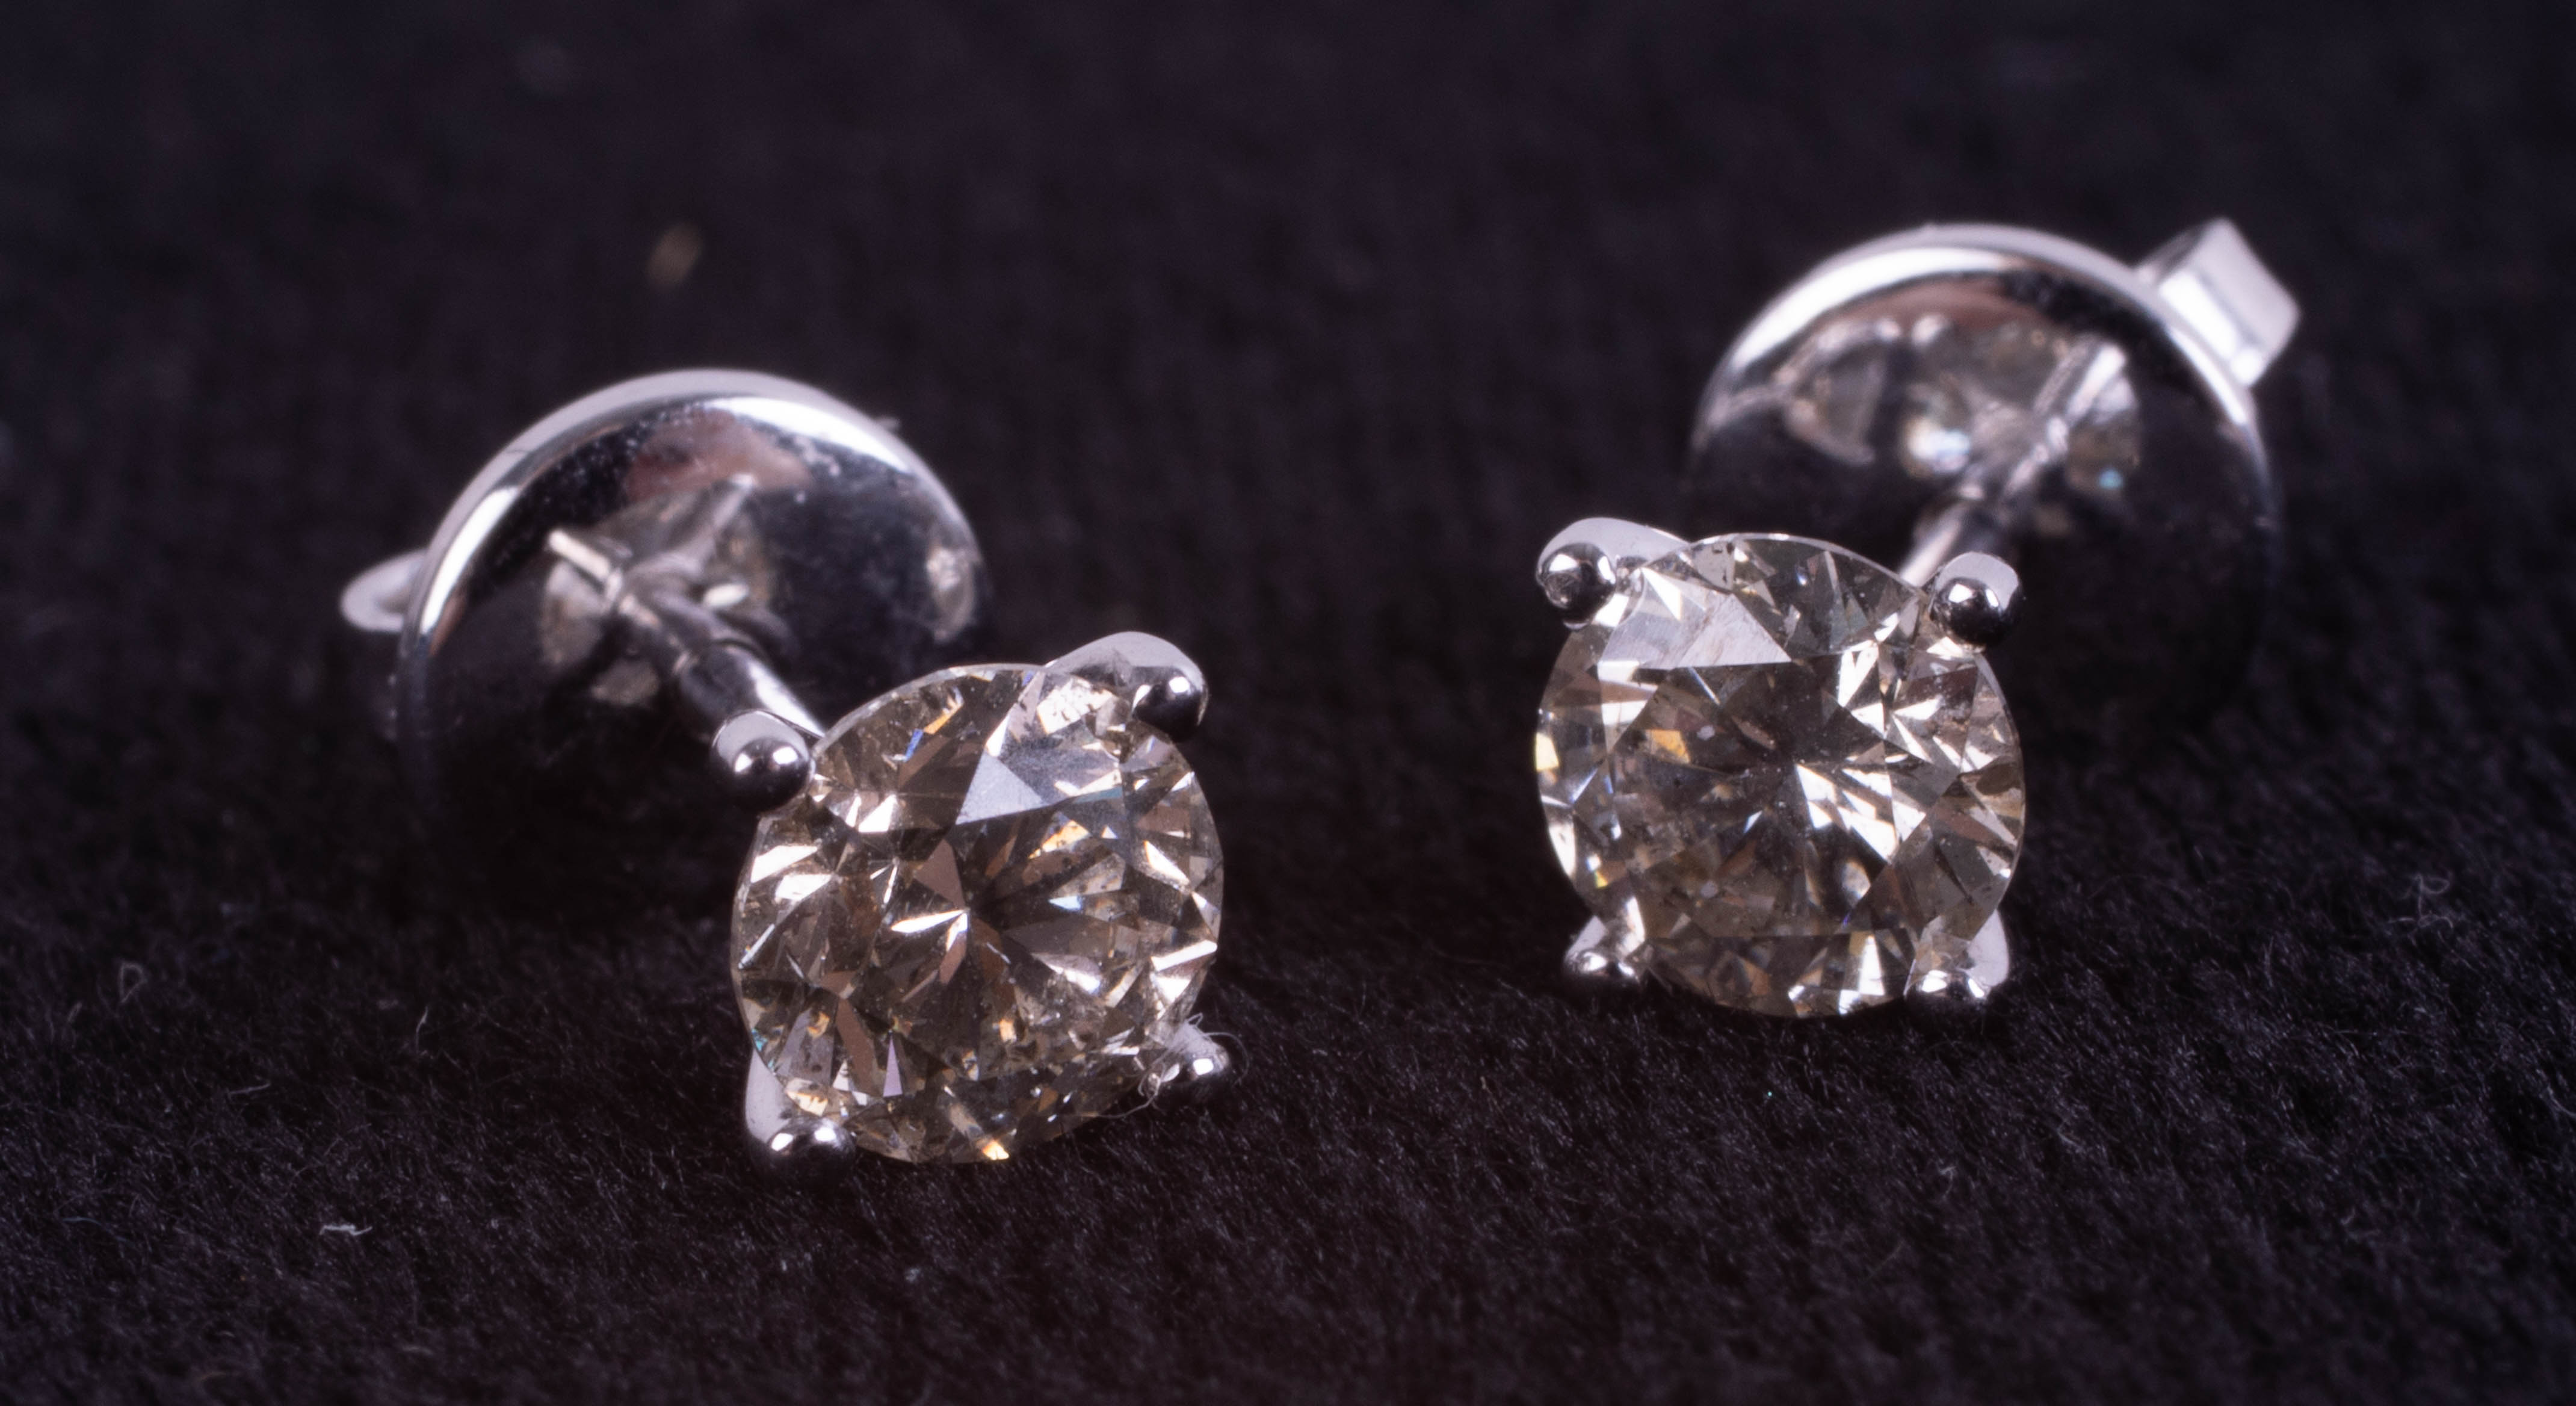 A pair of 18ct white gold solitaire diamond stud earrings, boxed. RBC diamonds approx 1.07ct.